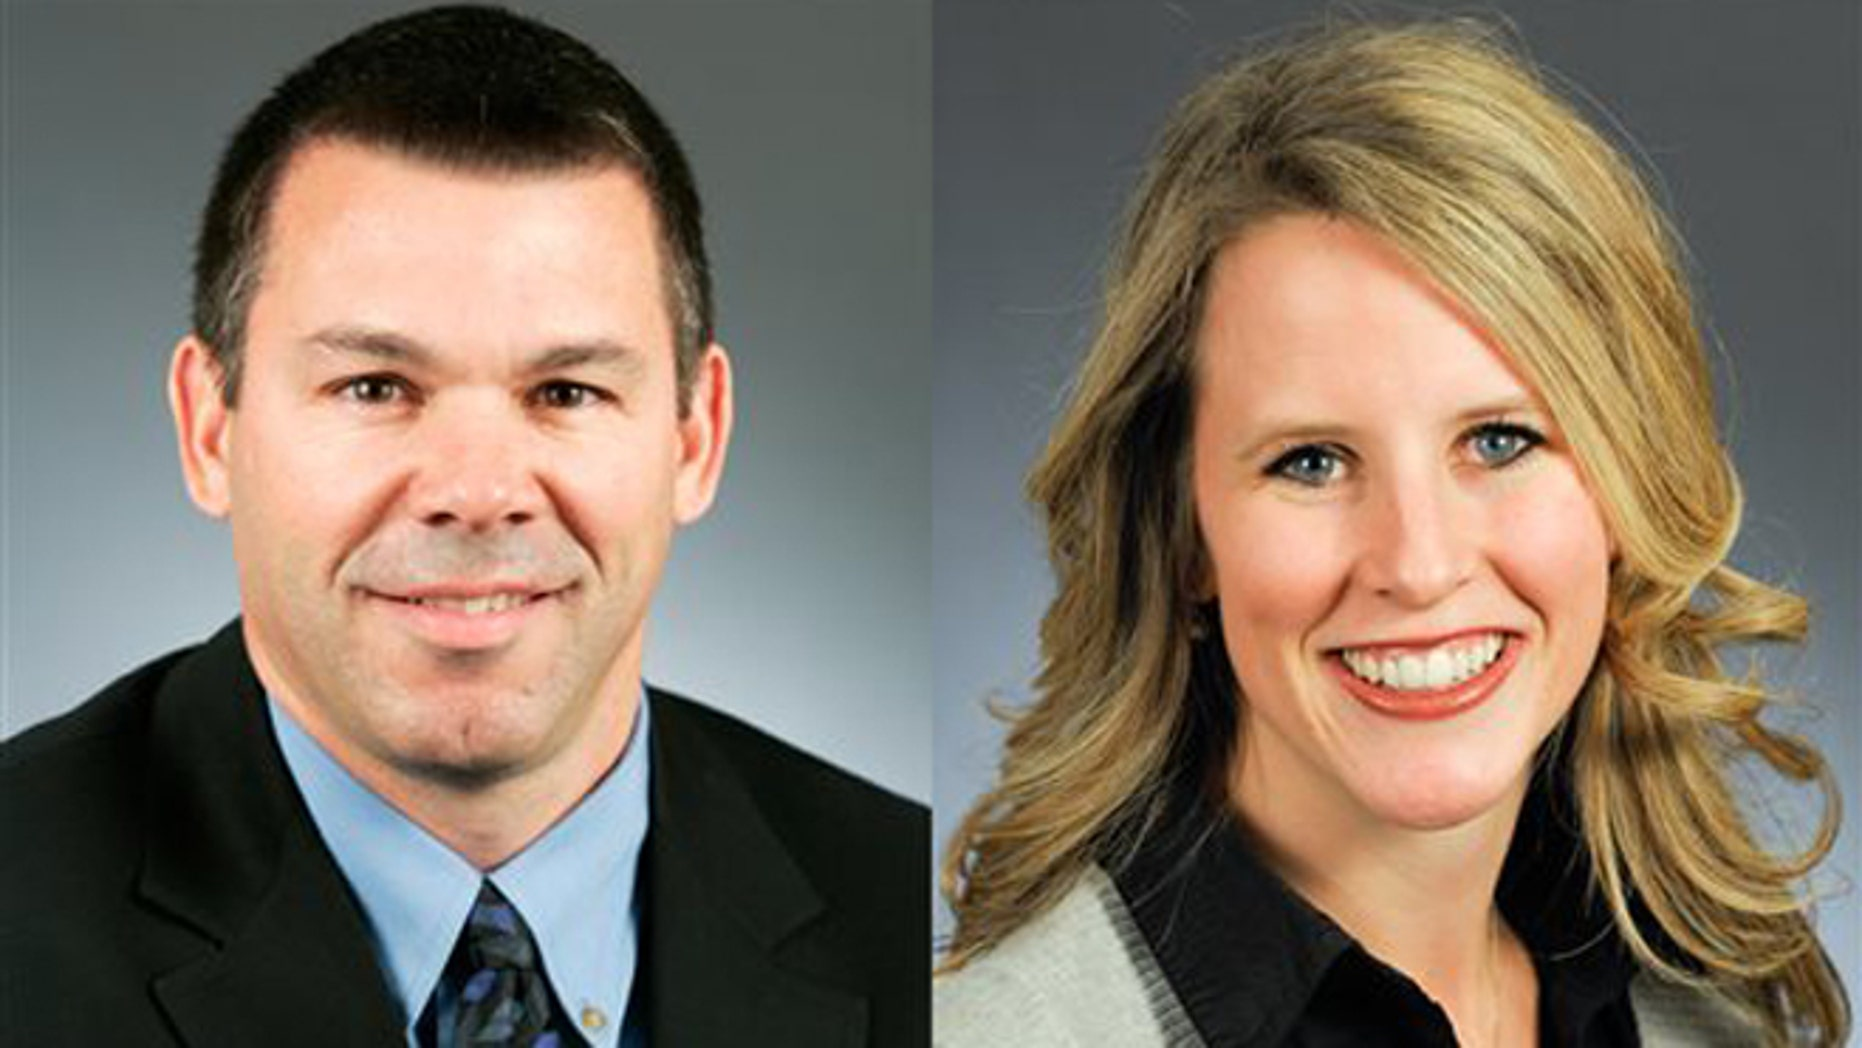 This combination of photos provided by the Minnesota House of Representatives shows Rep. Tim Kelly, R-Red Wing, left, and Rep. Tara Mack, R-Apple Valley.